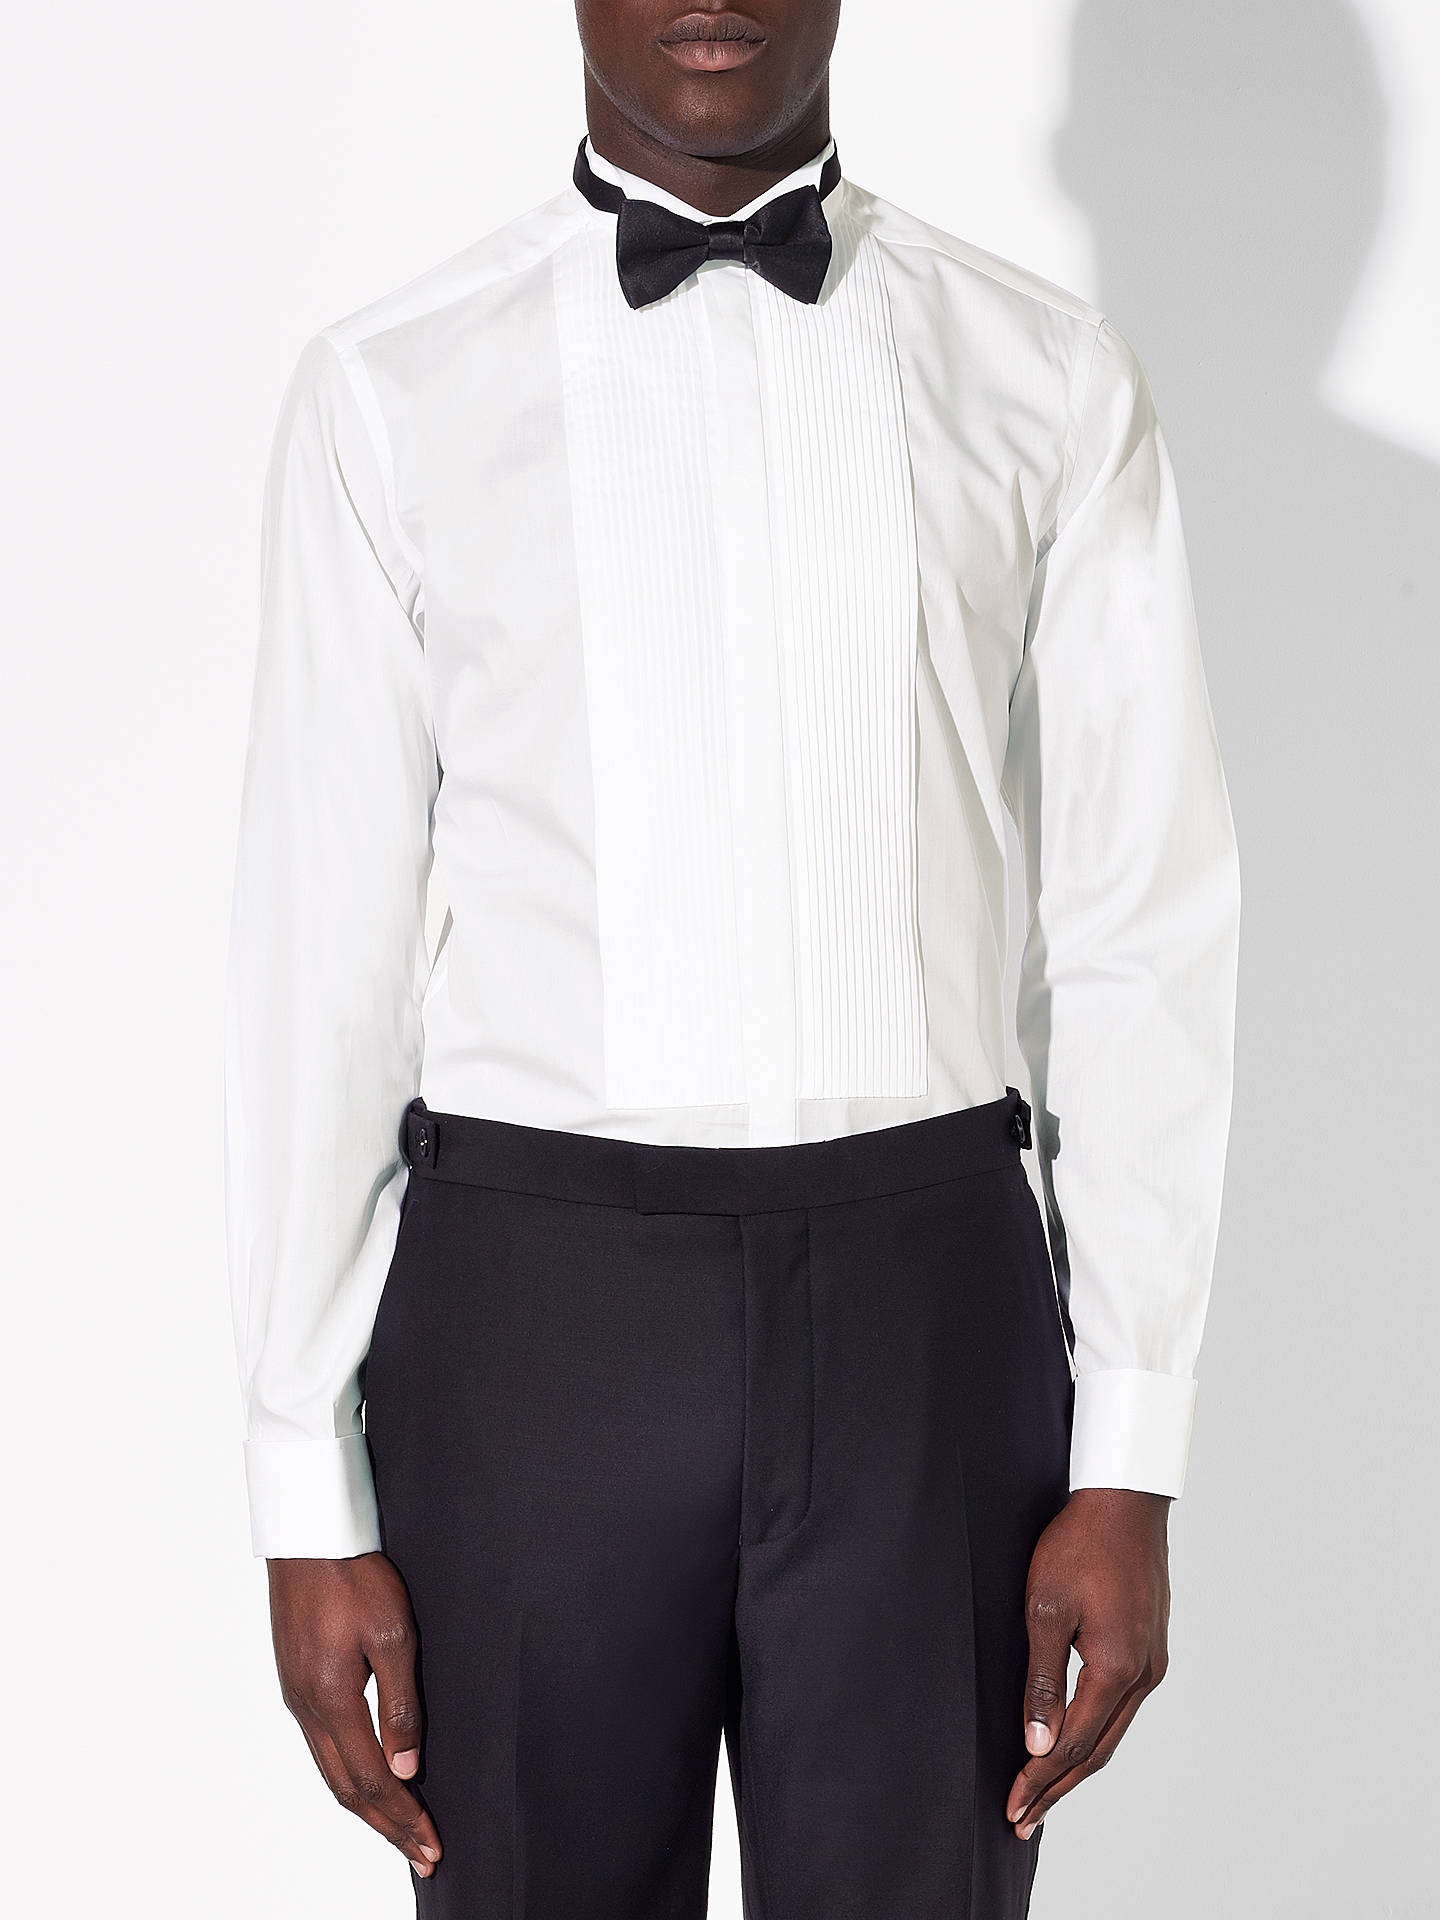 John Lewis Wing Collar Tailored Dress Shirt White At John Lewis